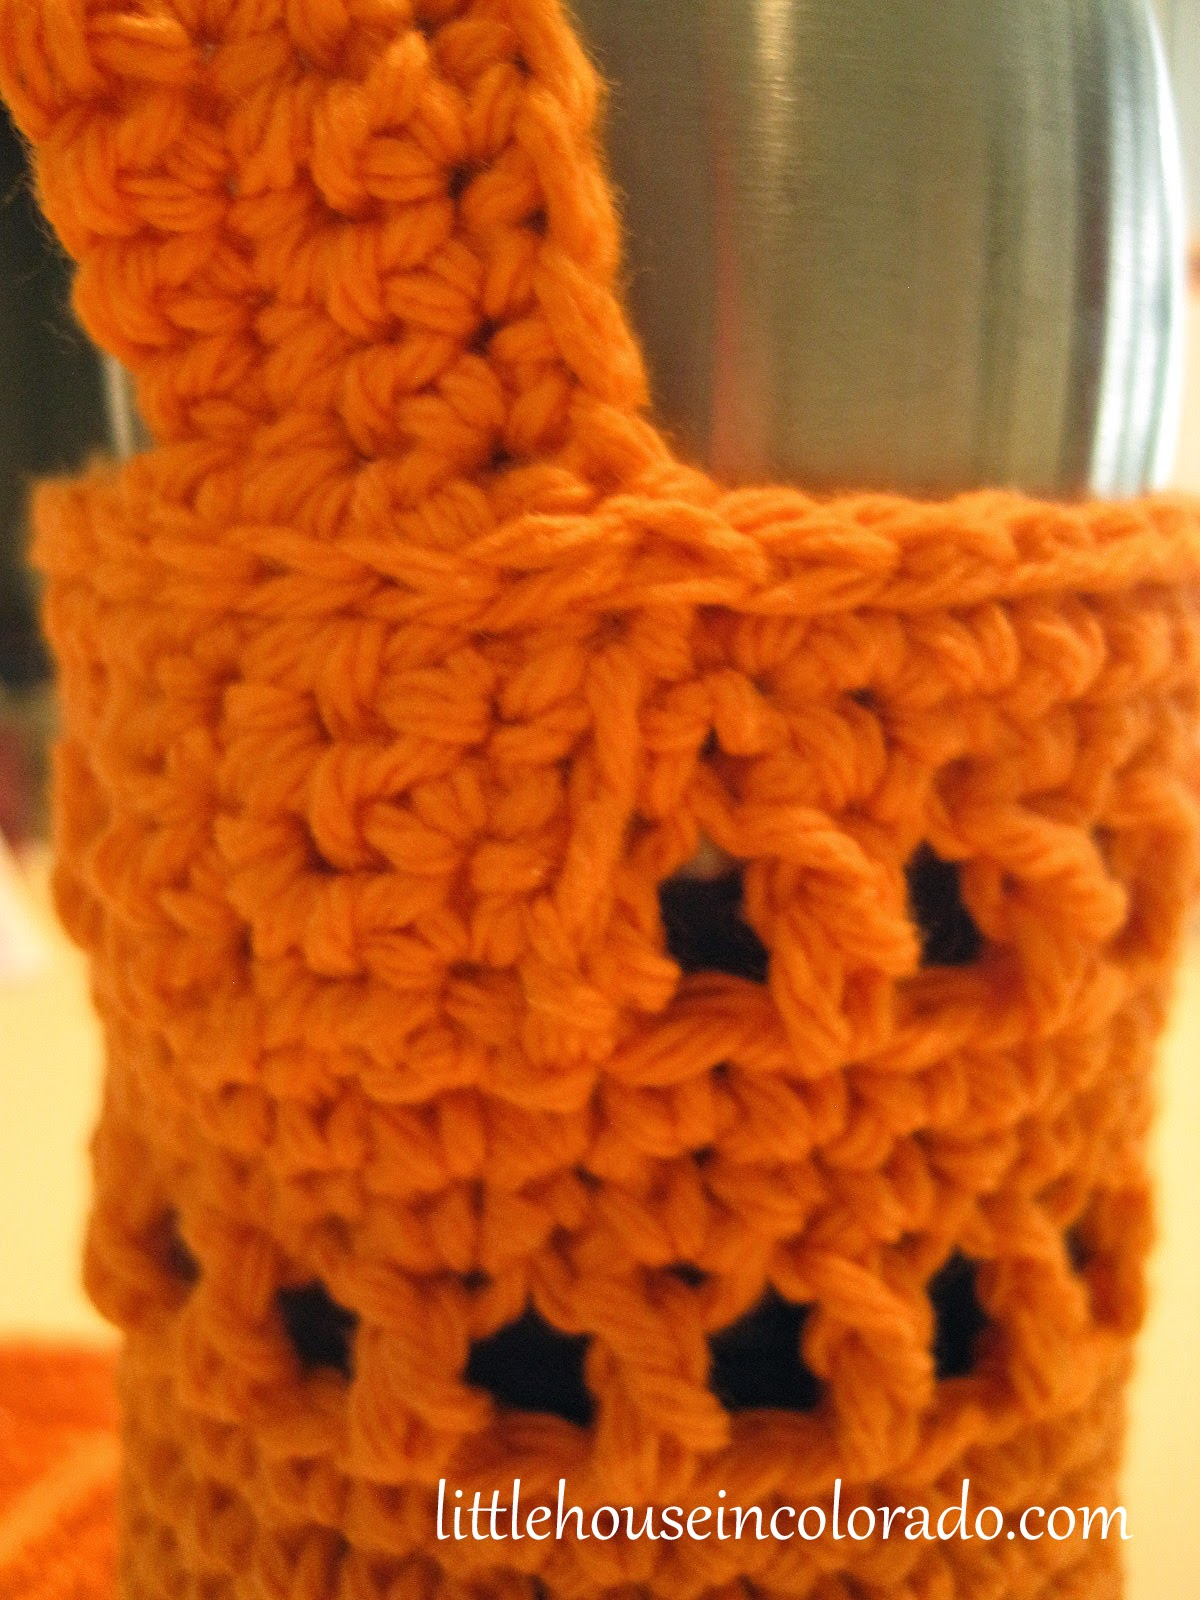 Little house in colorado pattern for crochet water bottle holders close up of the strap attachment and the slip stitches across the top bankloansurffo Choice Image